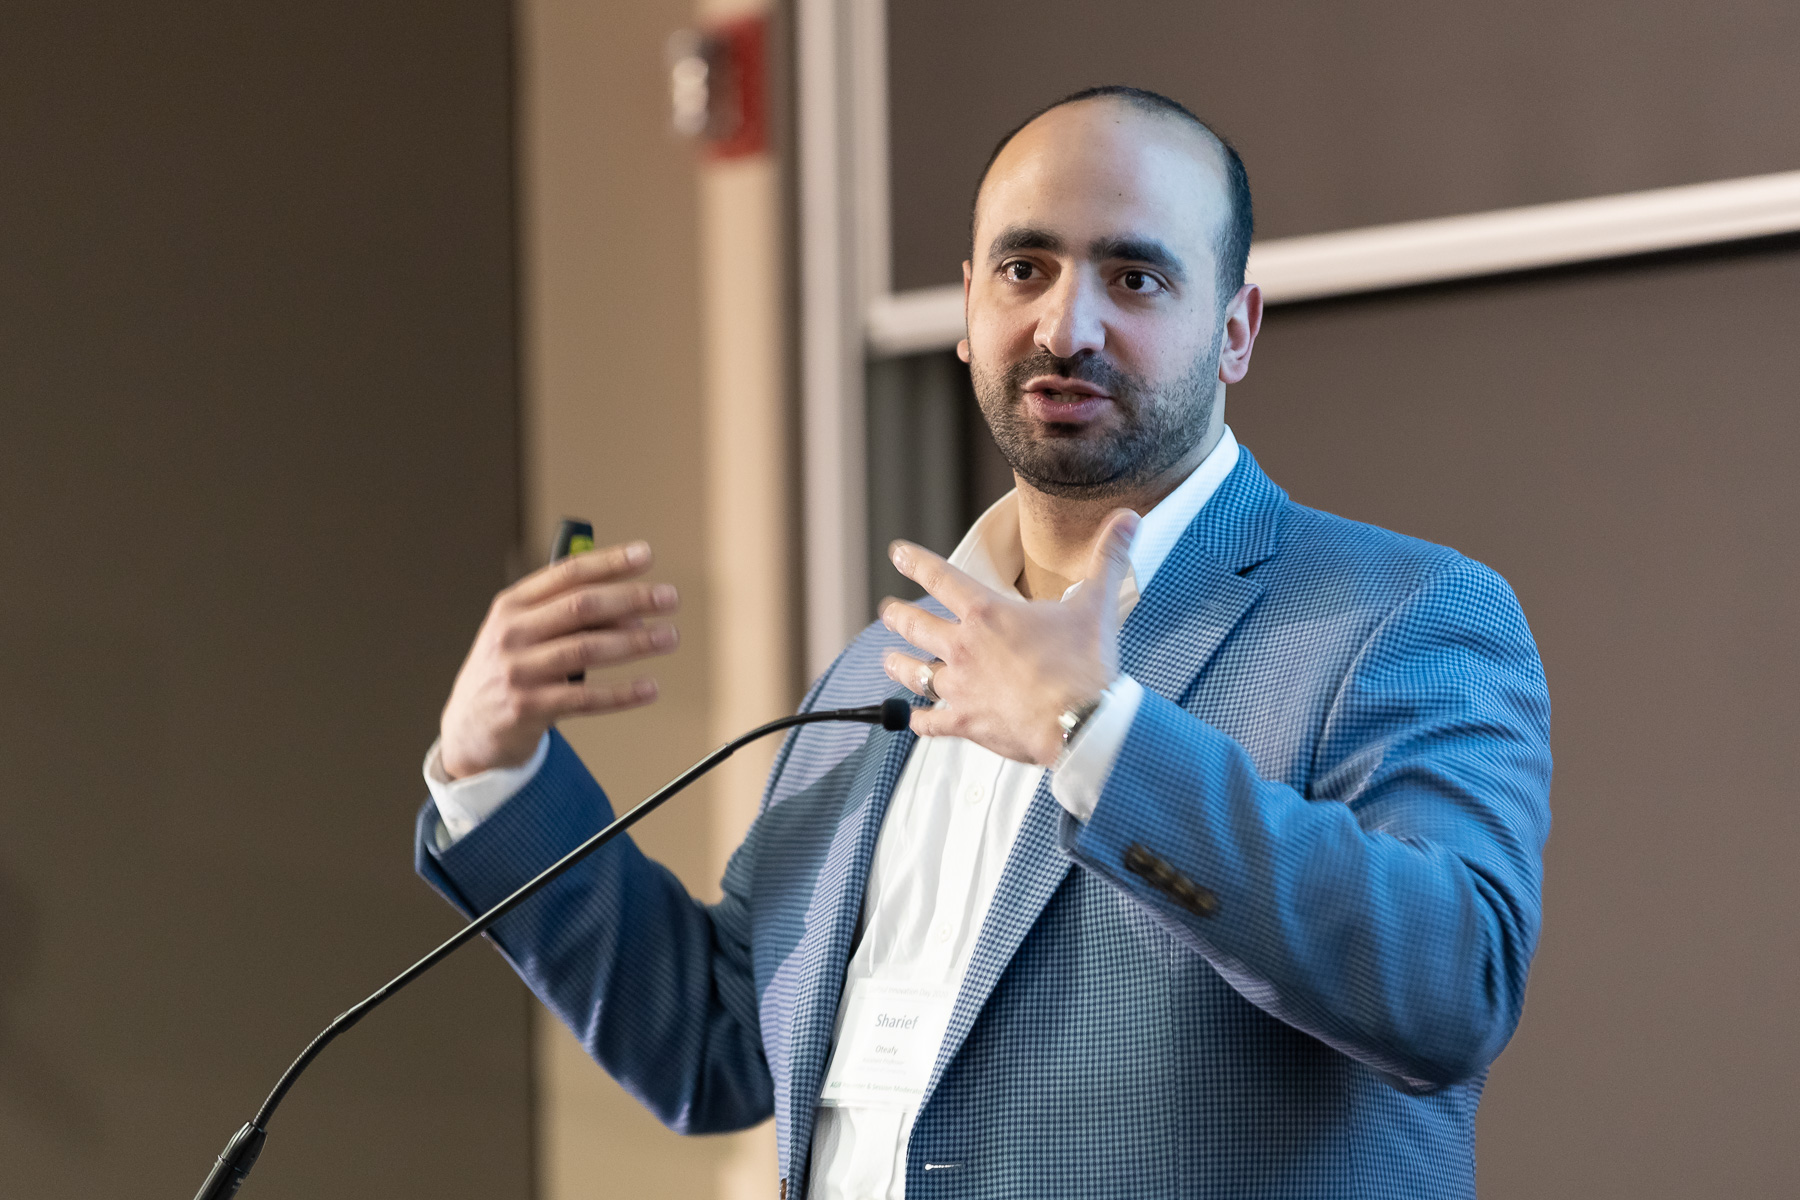 Sharief Oteafy, assistant professor in the College of Computing and Digital Media, presents his project, Next Generation Networking (NexGeN) Lab that will establish the very first Internet of Things (IoT) lab at DePaul. (DePaul University/Jeff Carrion)